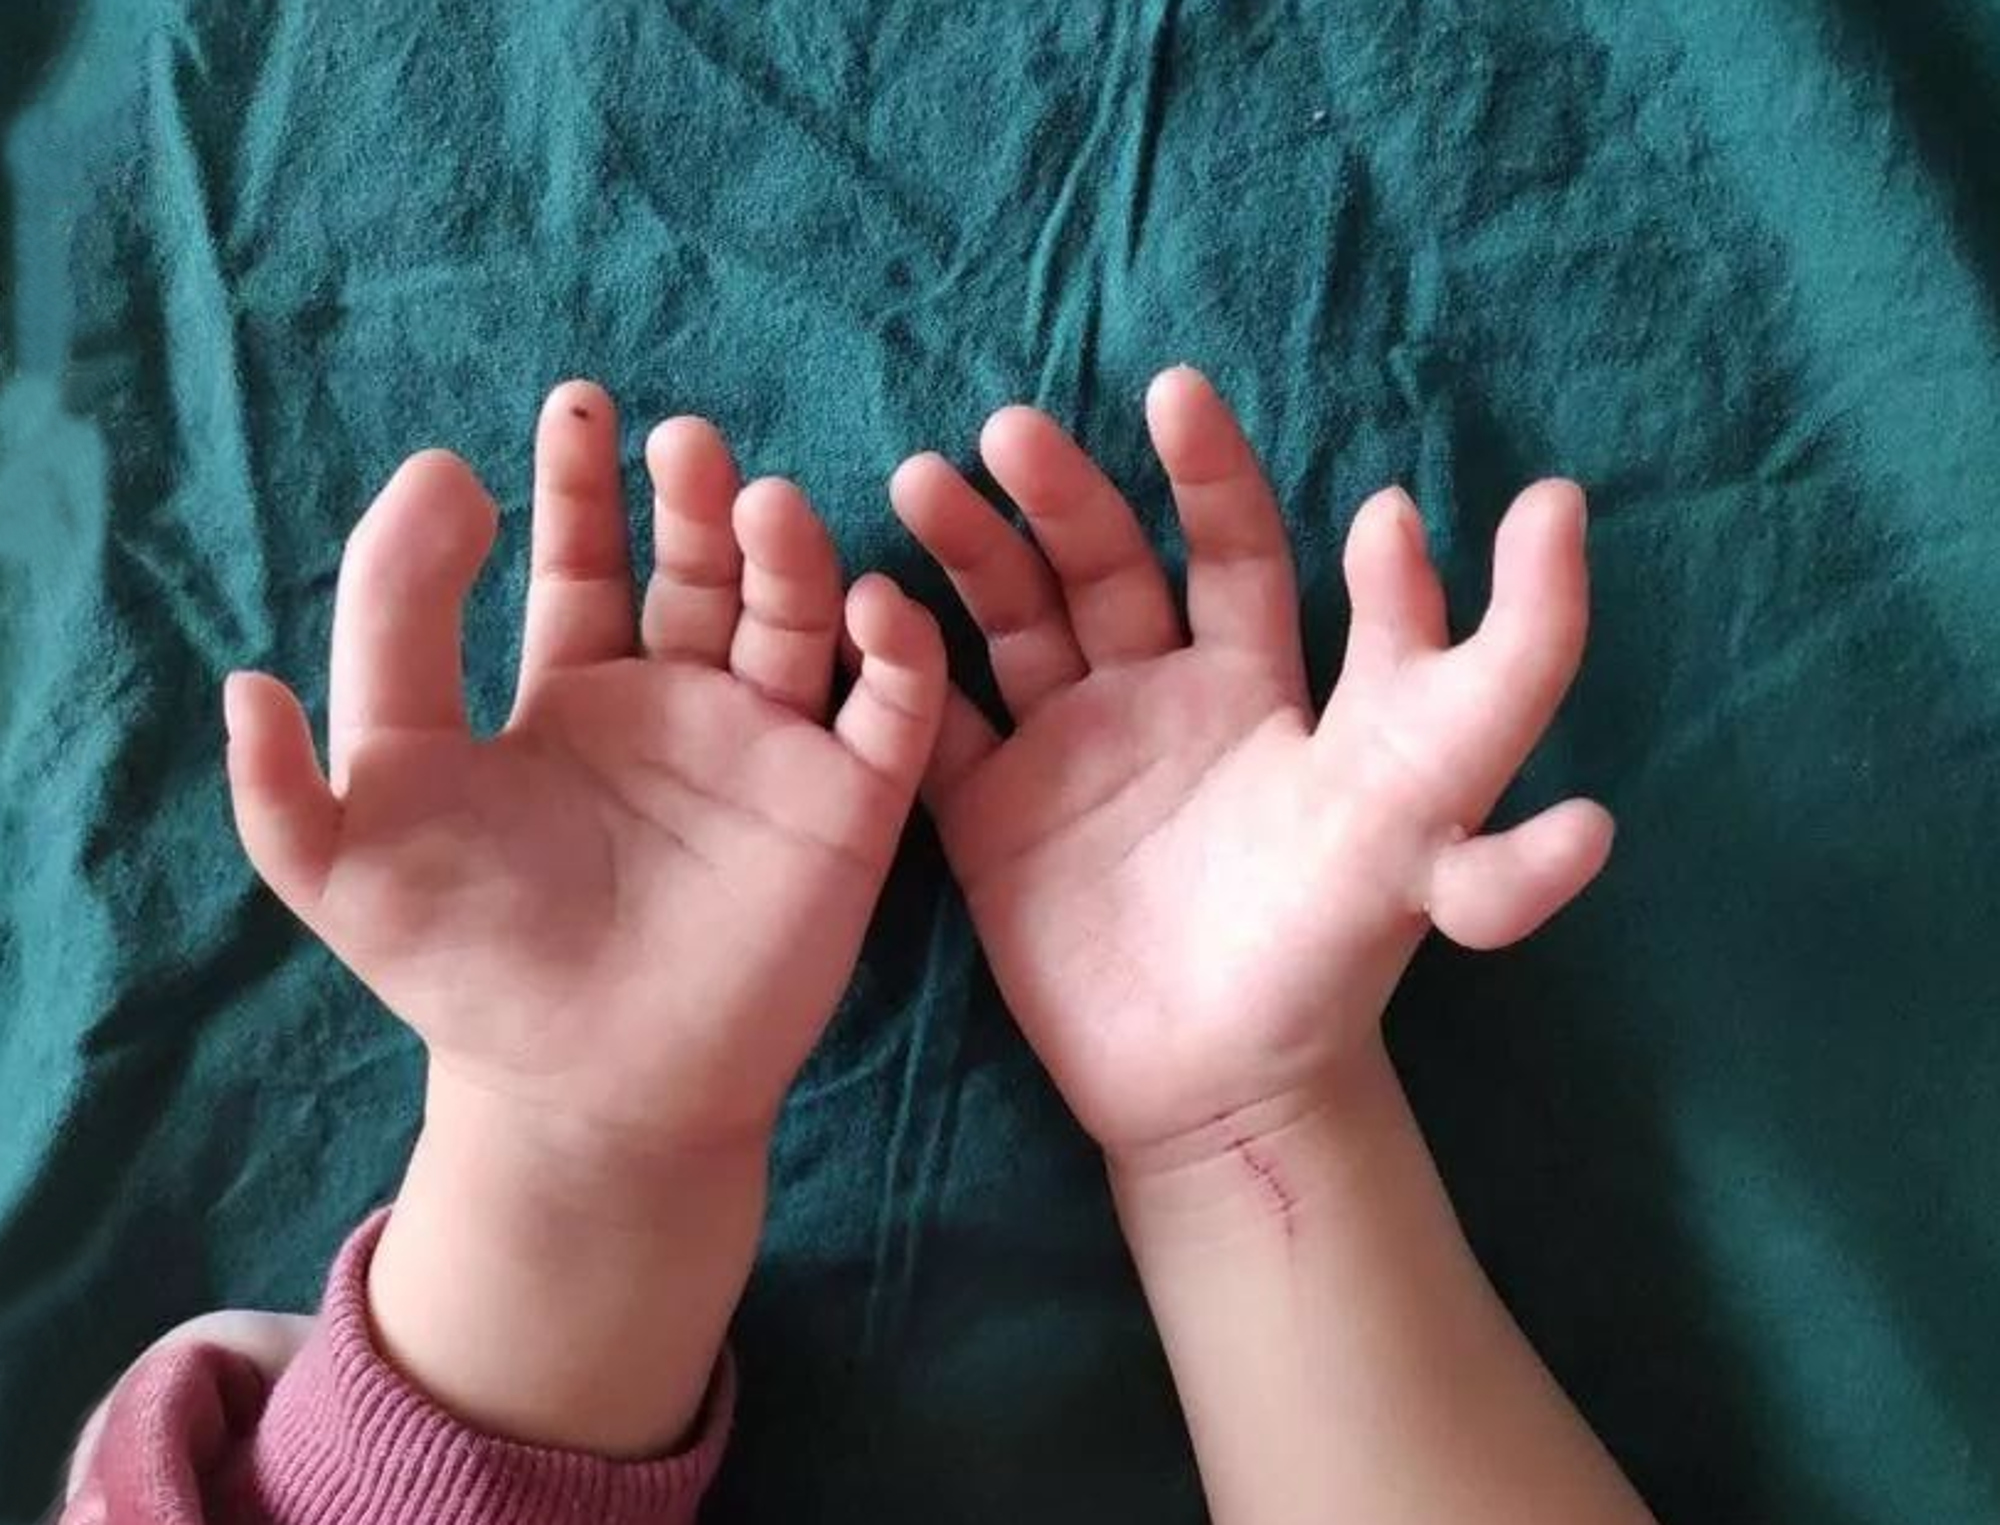 This three-year-old Chinese girl had 13 fingers. Credit: Asiawire